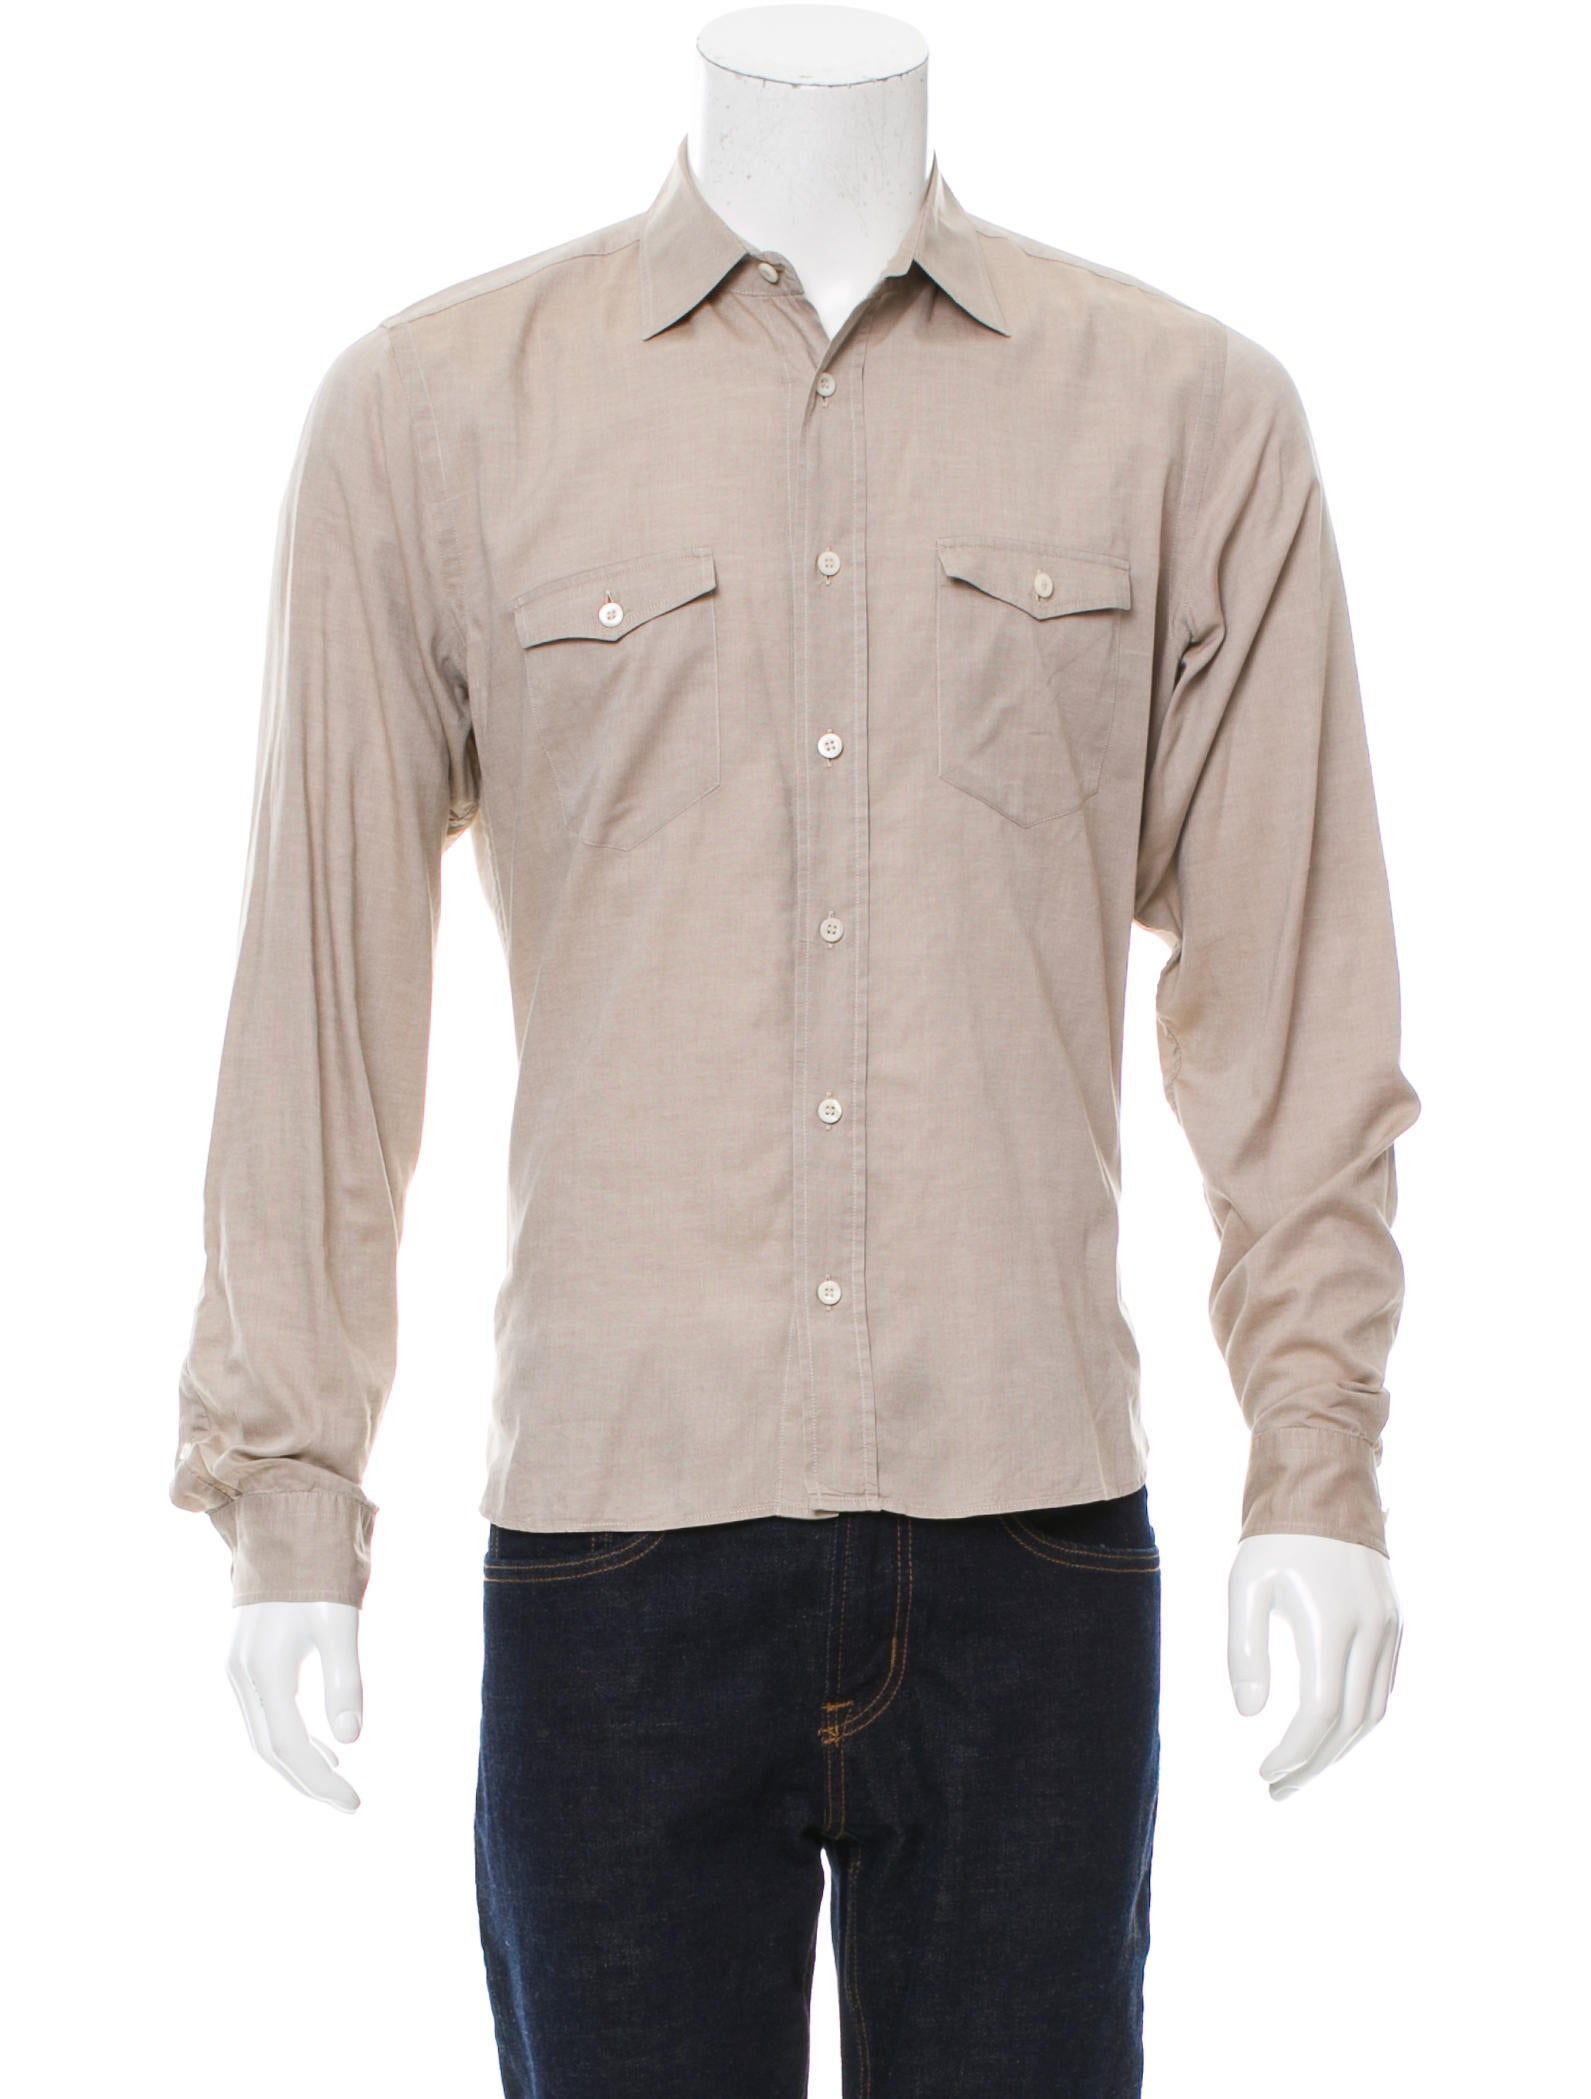 Prada long sleeve button up shirt clothing pra154699 for Cool long sleeve button up shirts